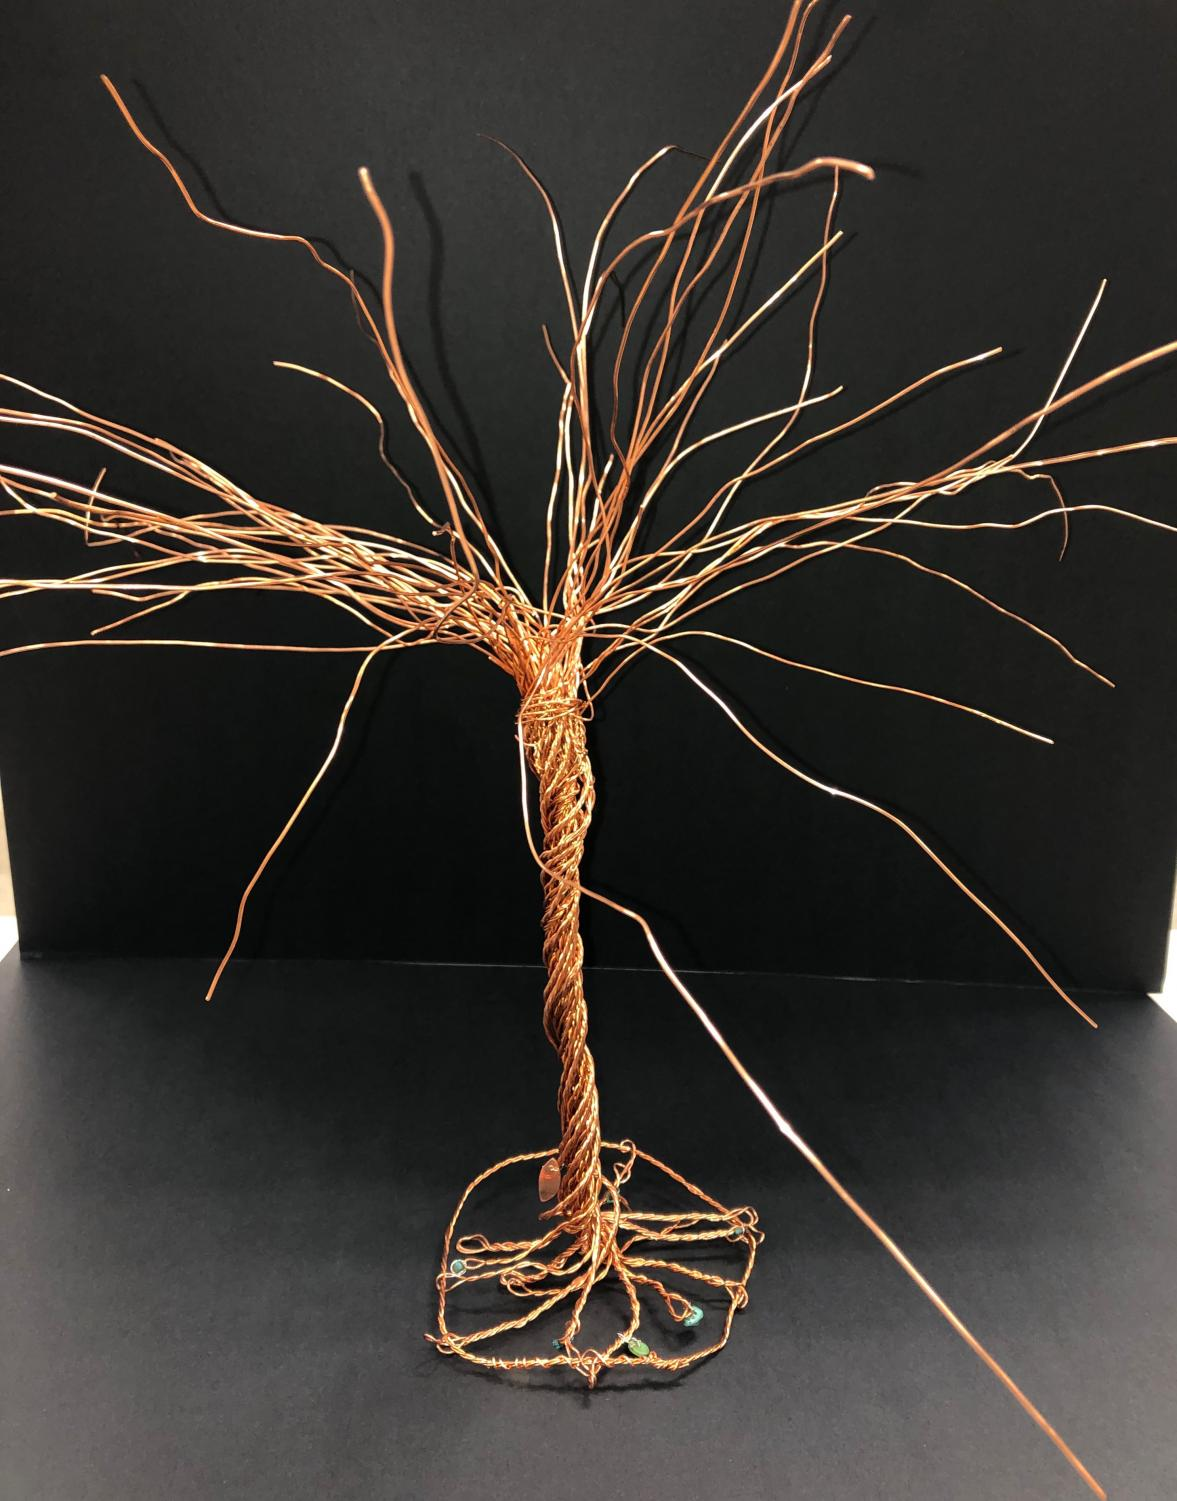 A tree made from copper wire crafted by Izzy Miller.